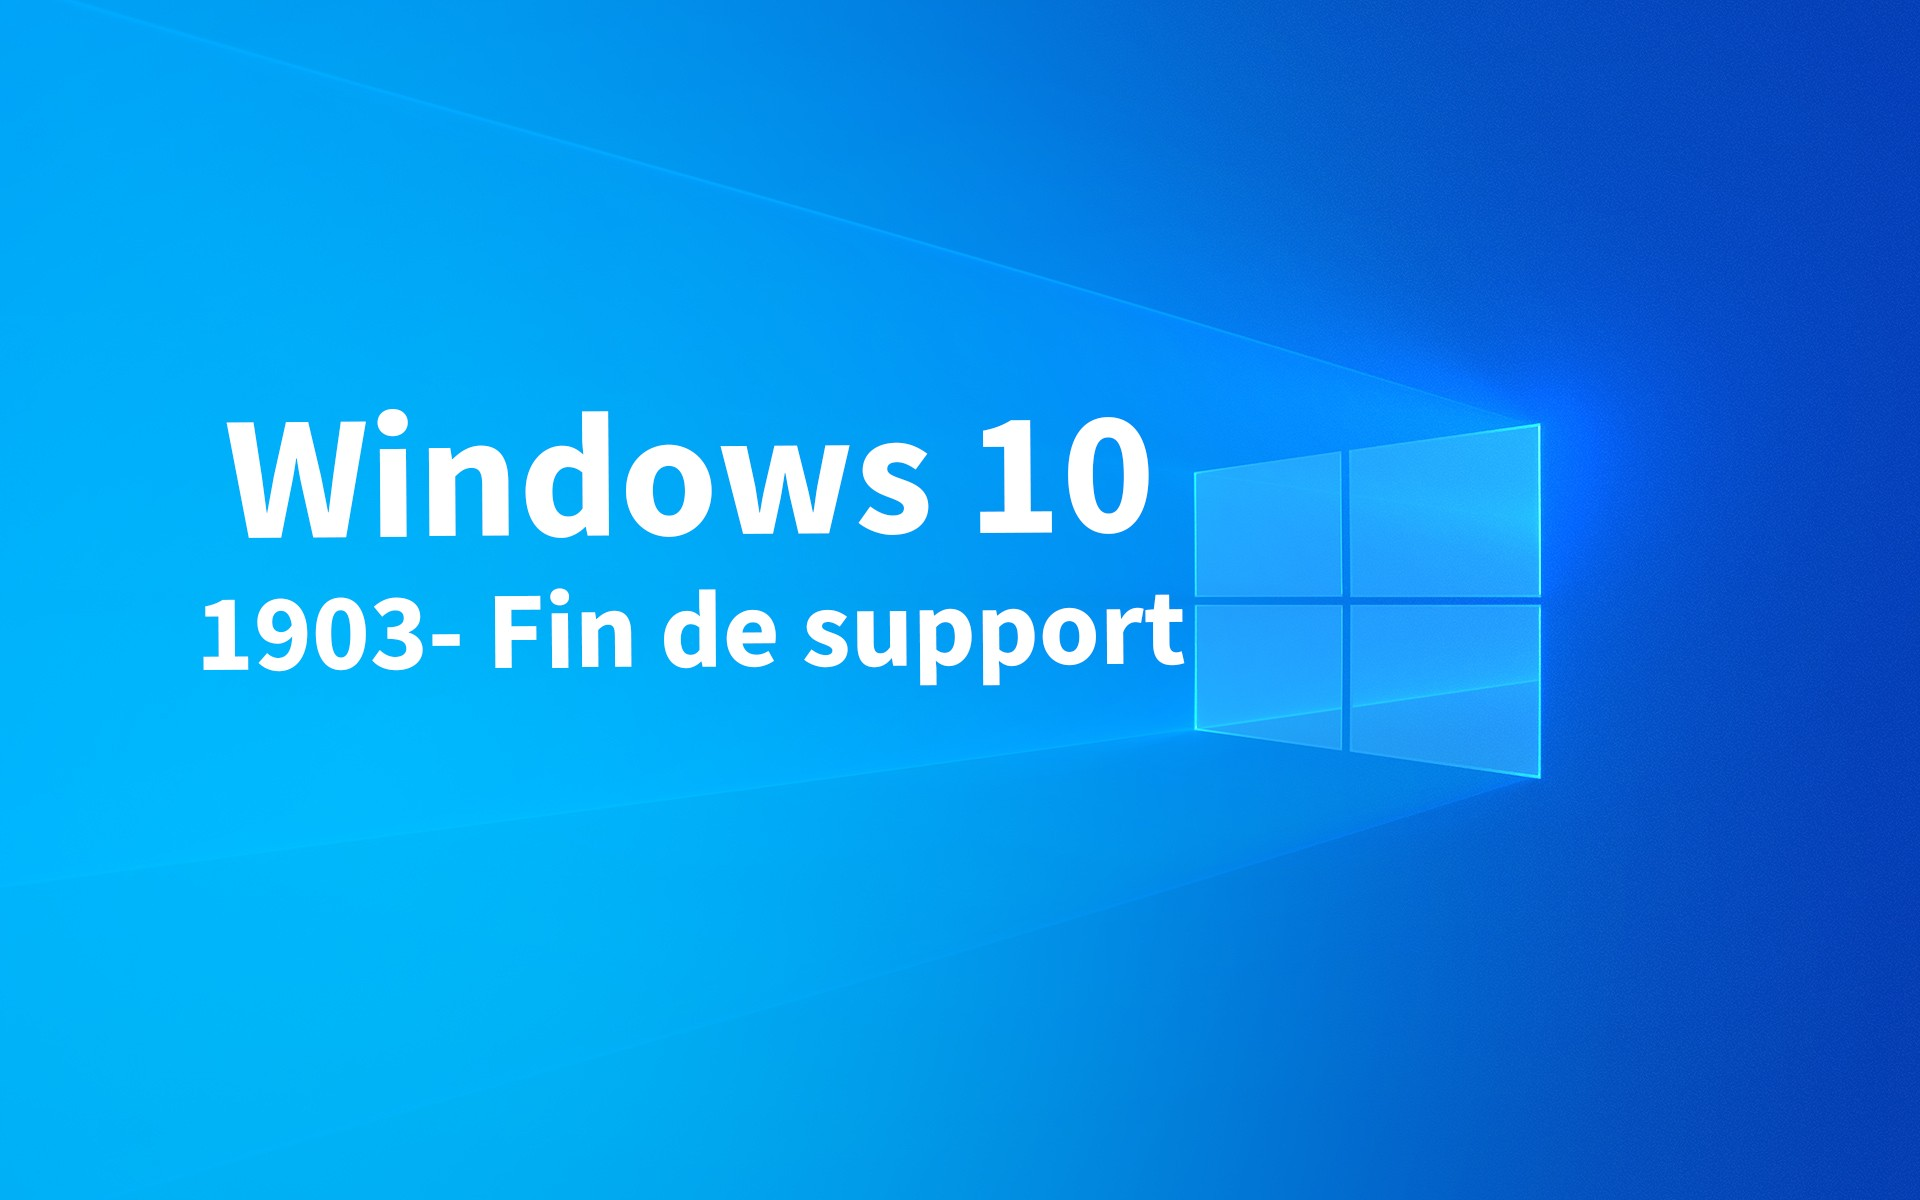 Windows 10 : fin du support de la version 1903 !